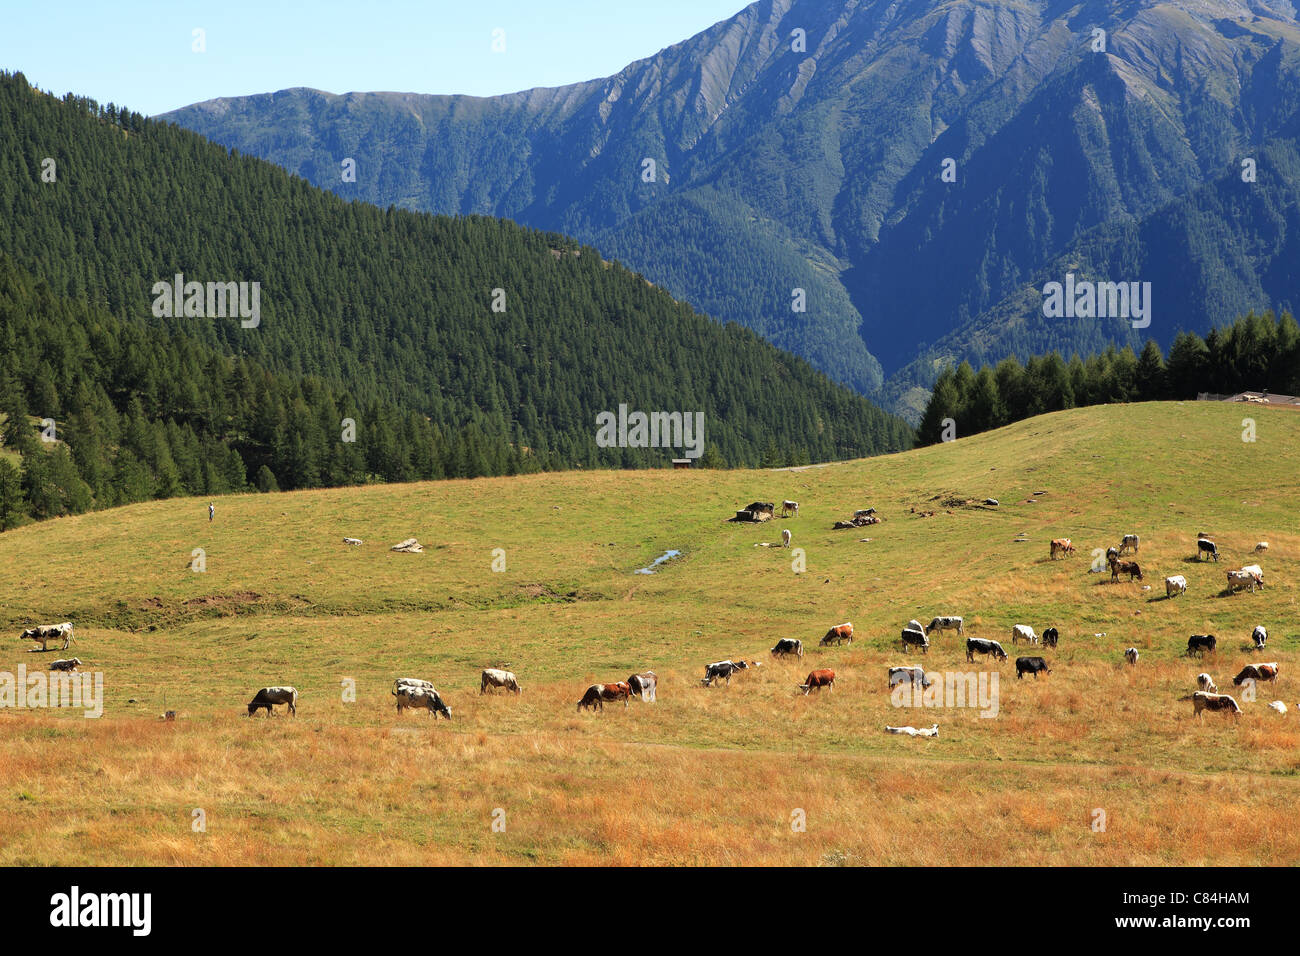 Herd of cows on alpine pasture among mountains in Alps, northern Italy. Stock Photo